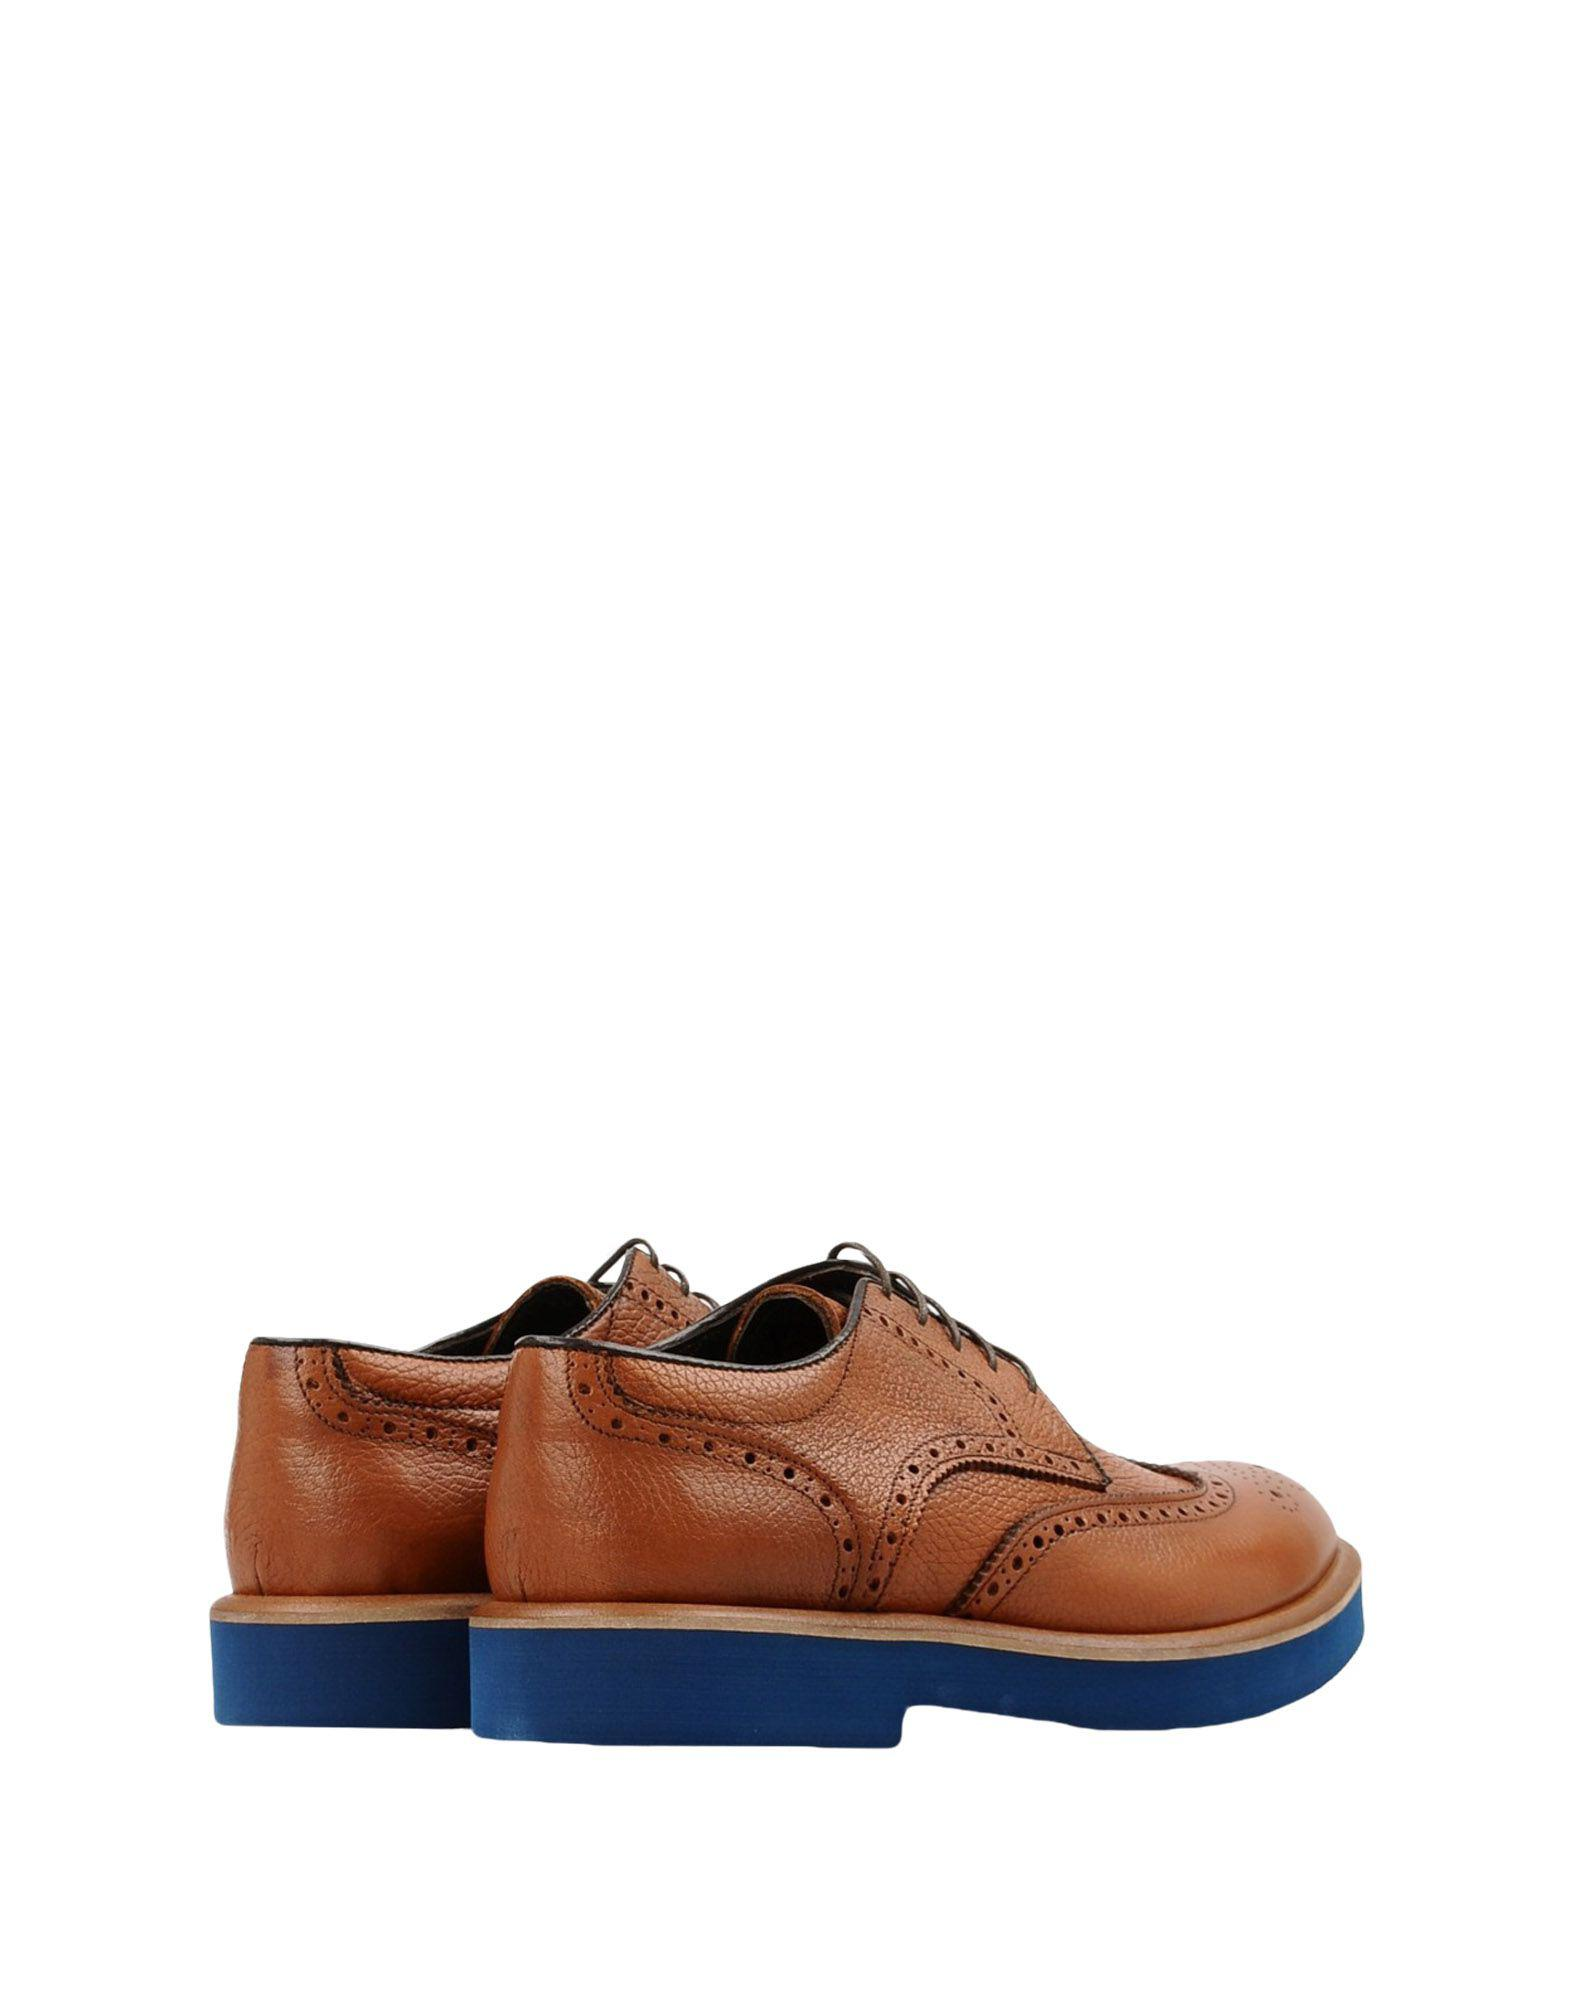 8 Leather Lace-up Shoes in Tan (Brown) for Men